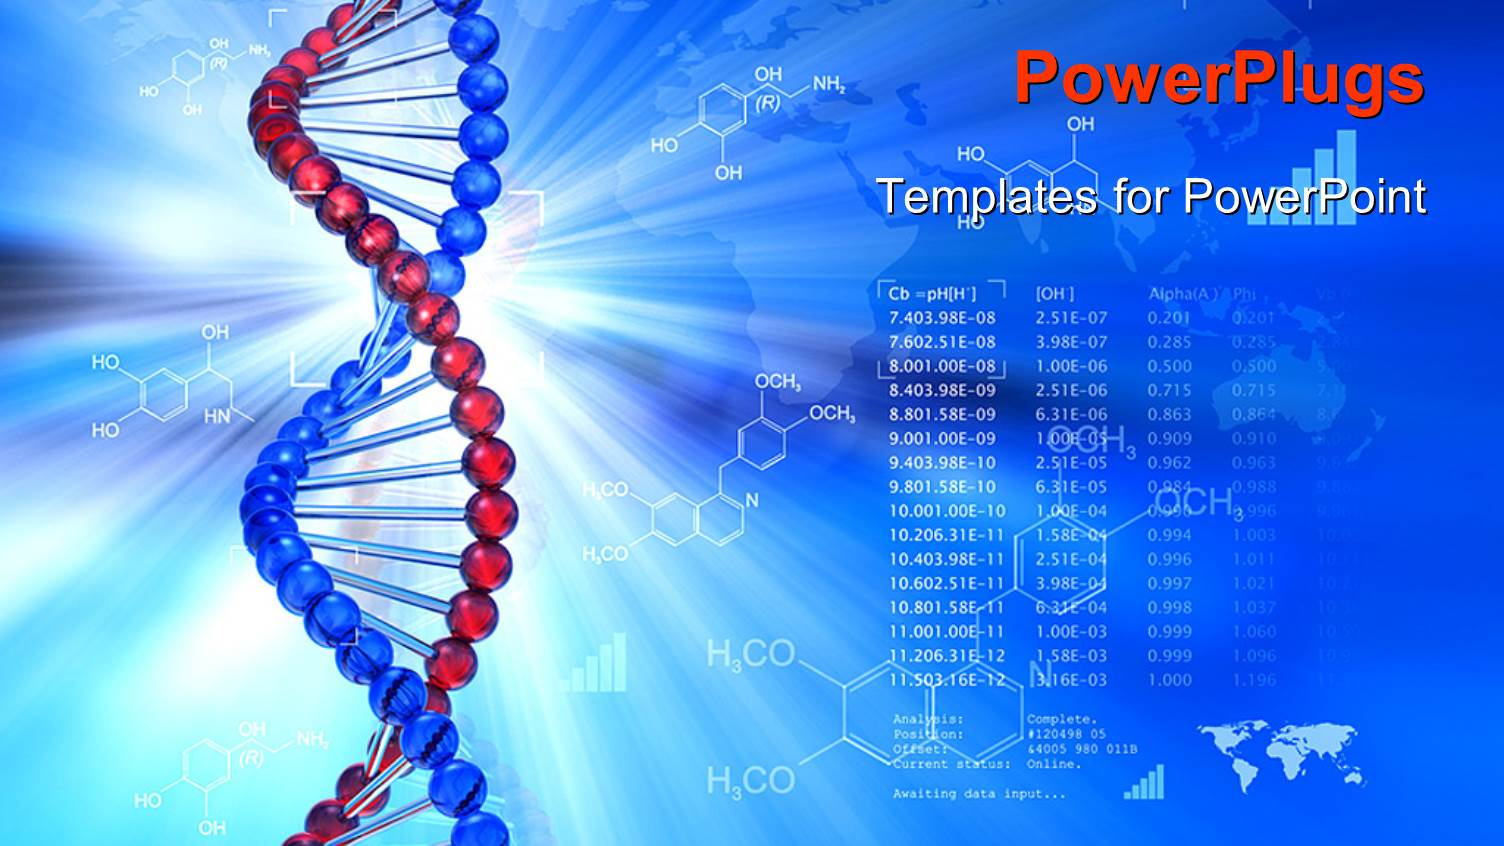 Genetic powerpoint templates crystalgraphics ppt enhanced with genetic dna symbol with chemical formulas in background template size toneelgroepblik Images